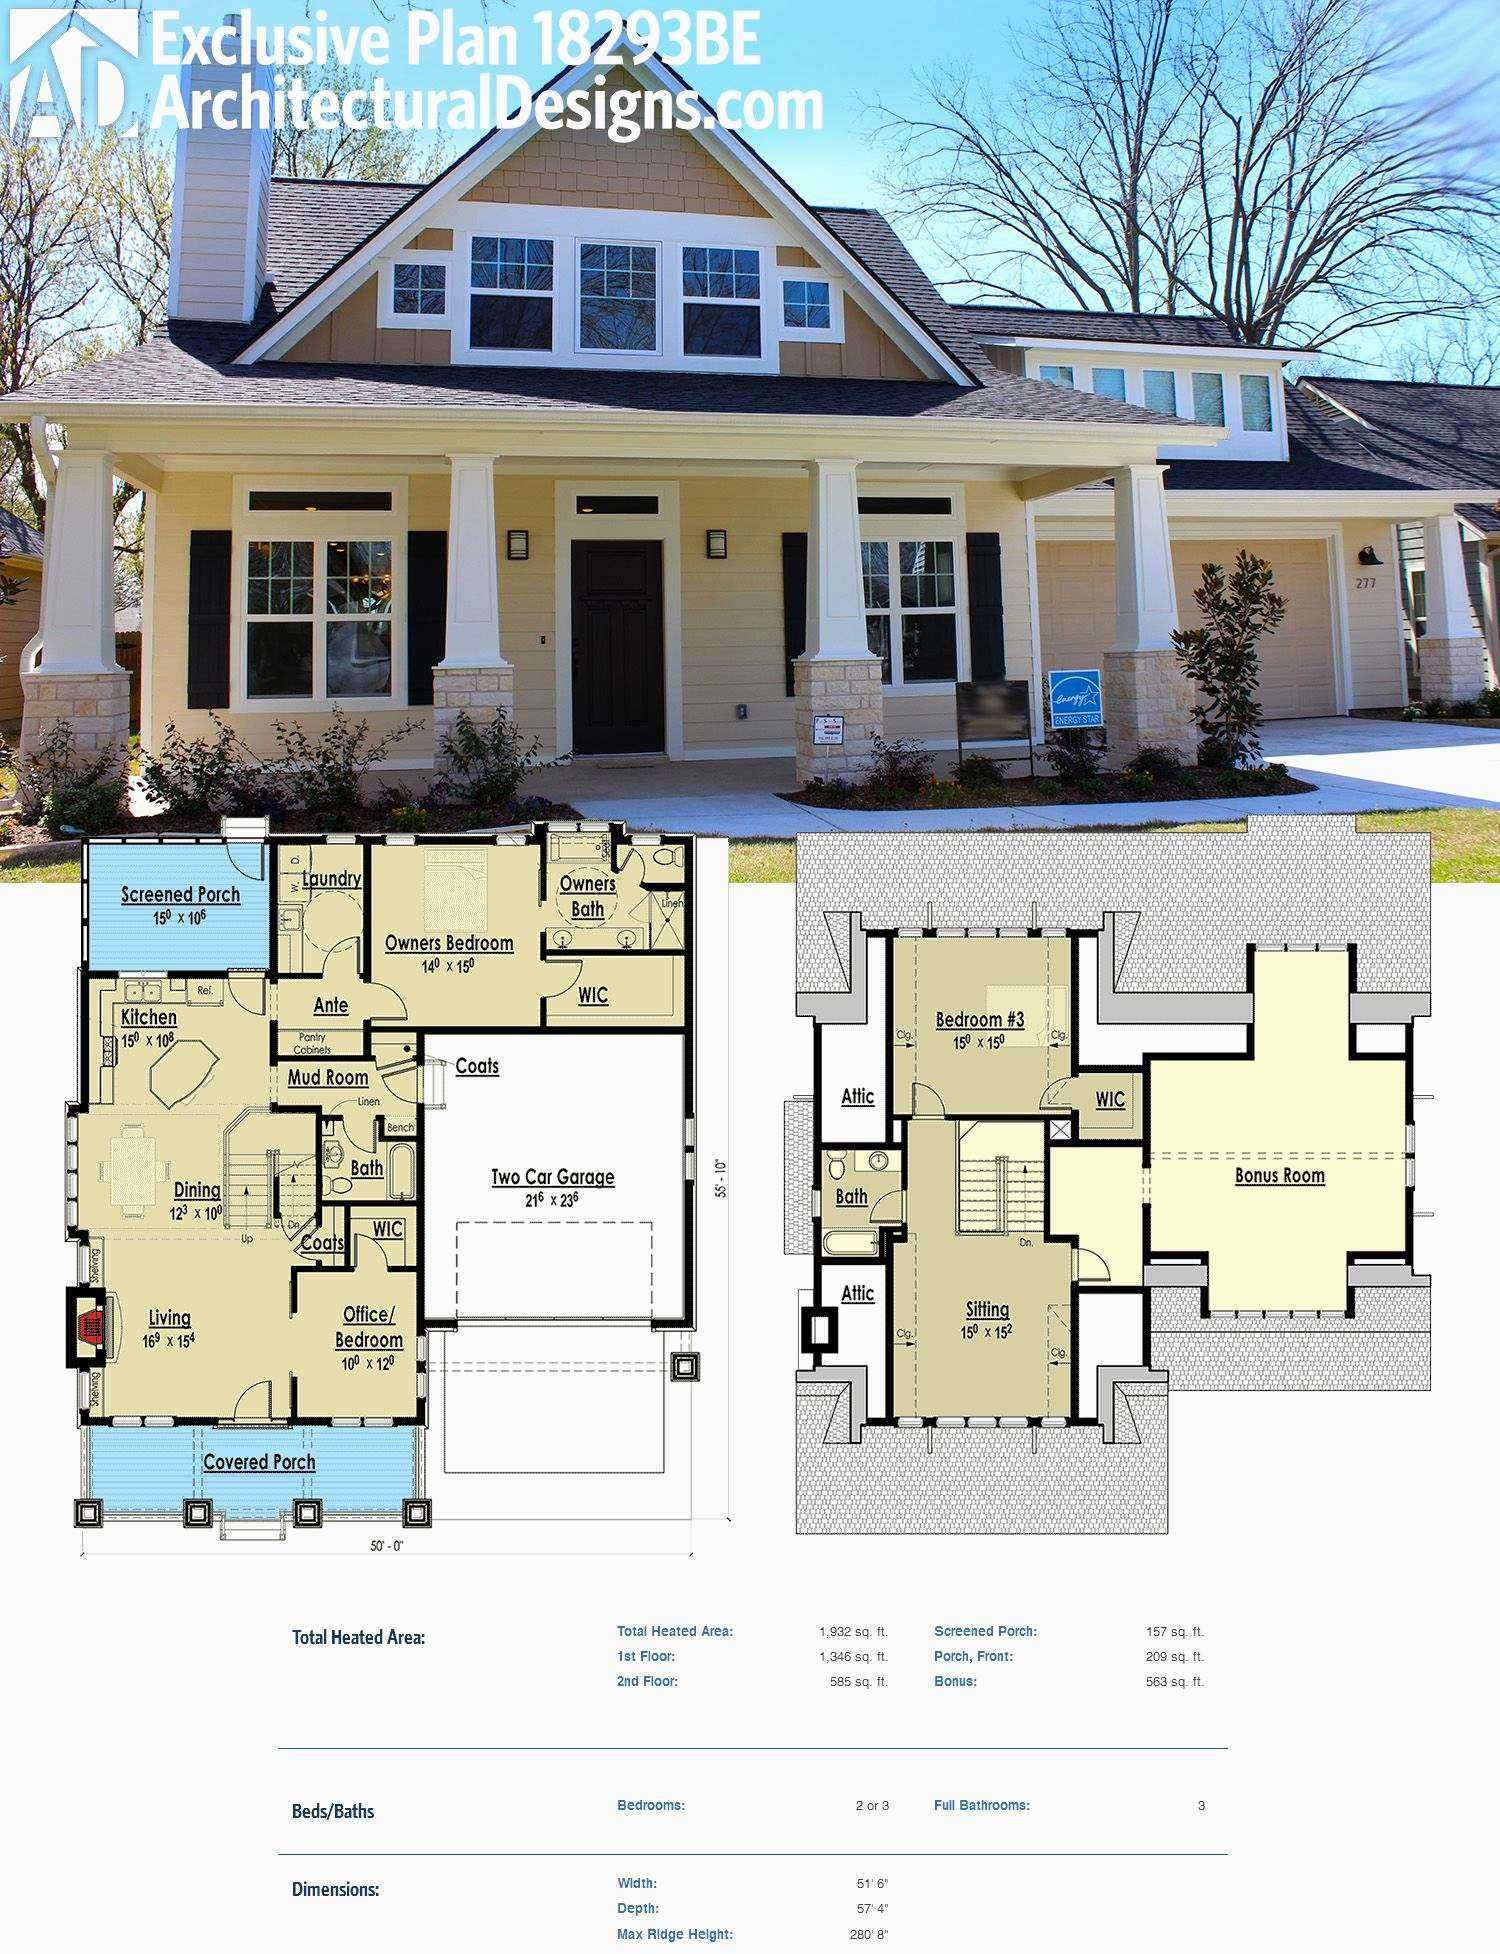 Small Farmhouse Plans With Garage Lovely Small Farmhouse Plans With Garage Farm Home Plans Best Small Farmhouse Plans Craftsman House Plans Farmhouse Plans